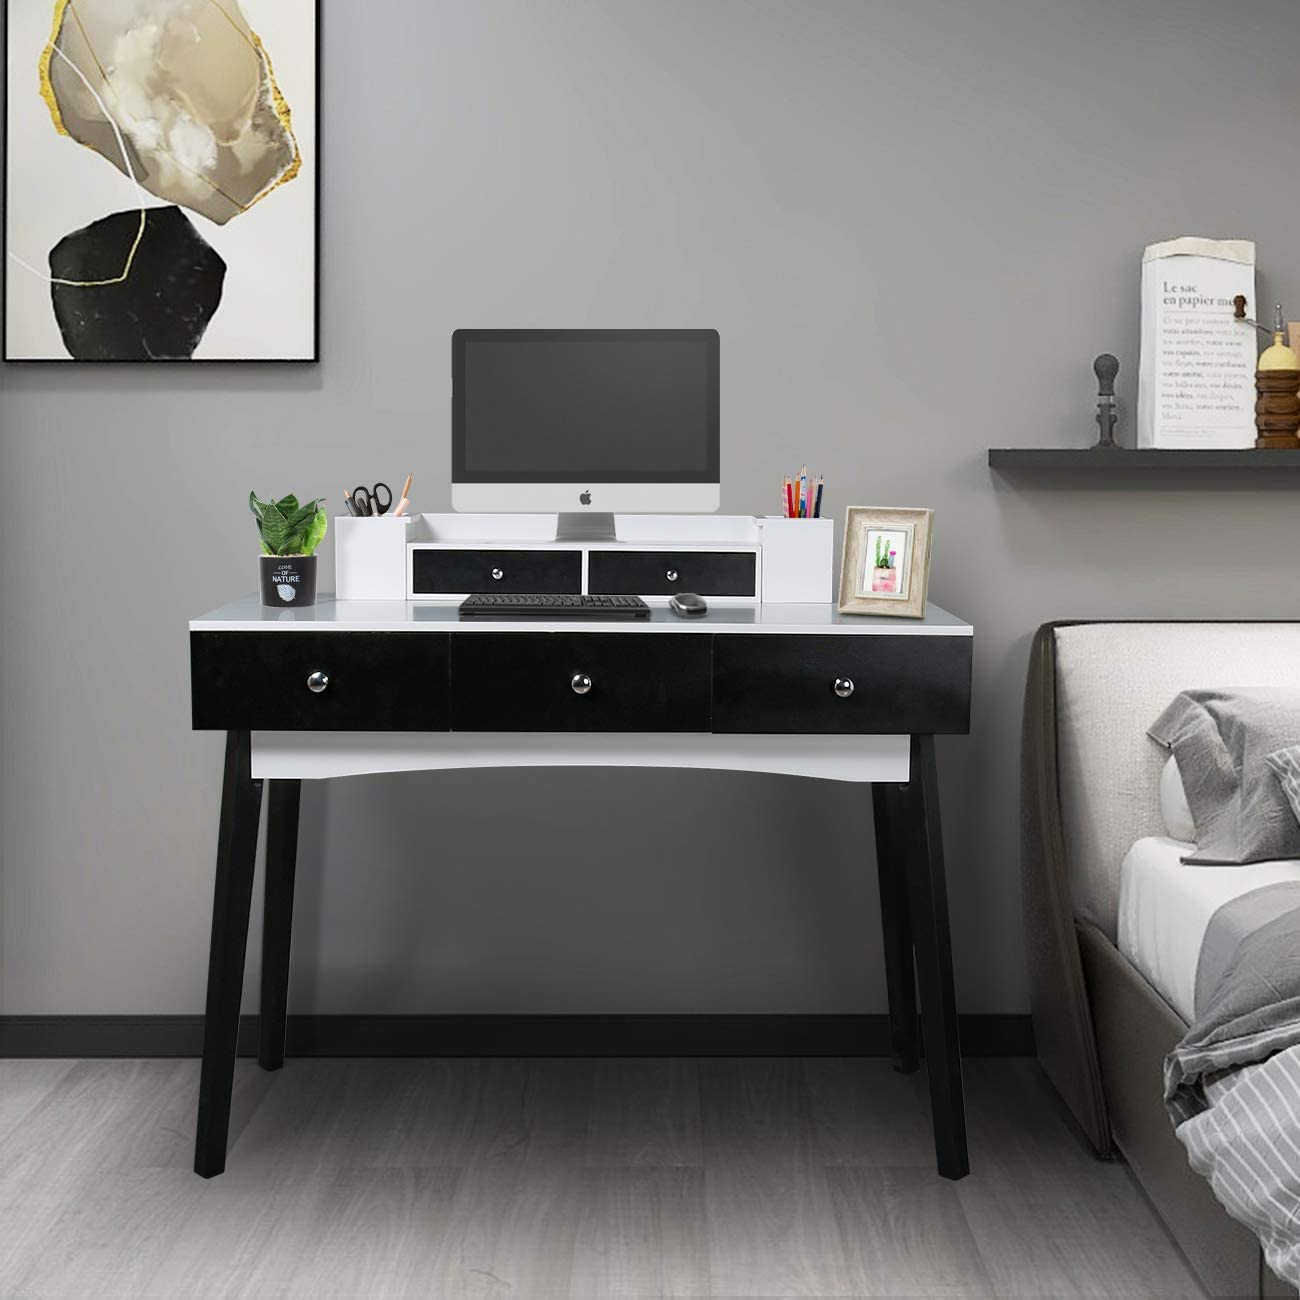 39.37 inch Home Office Writing Desk Station